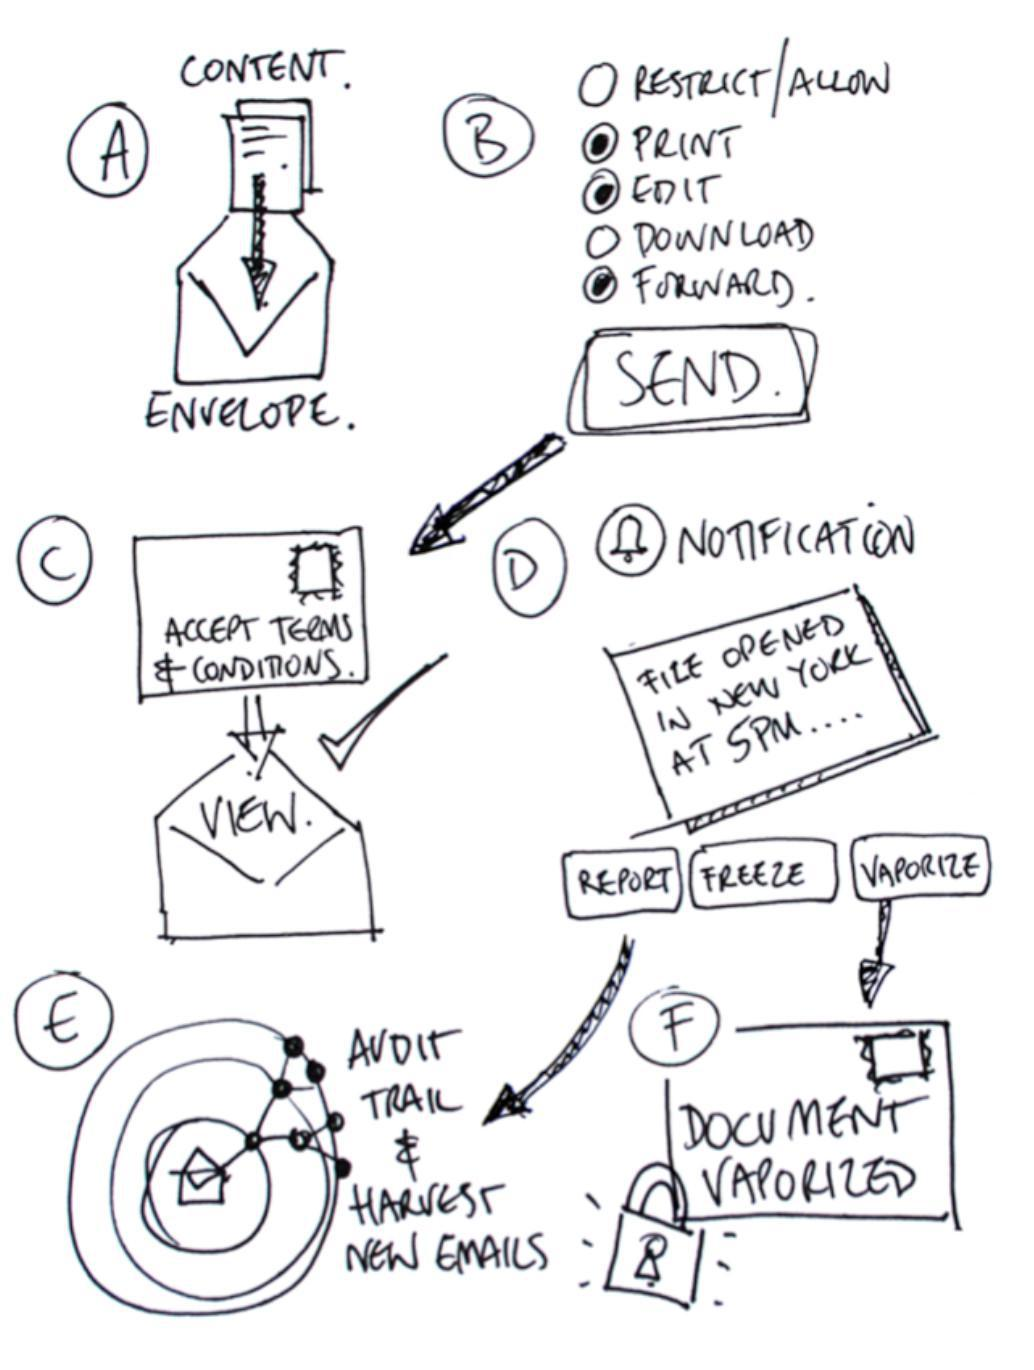 Enviie the Virtual Envelope: How to maintain privacy and c control